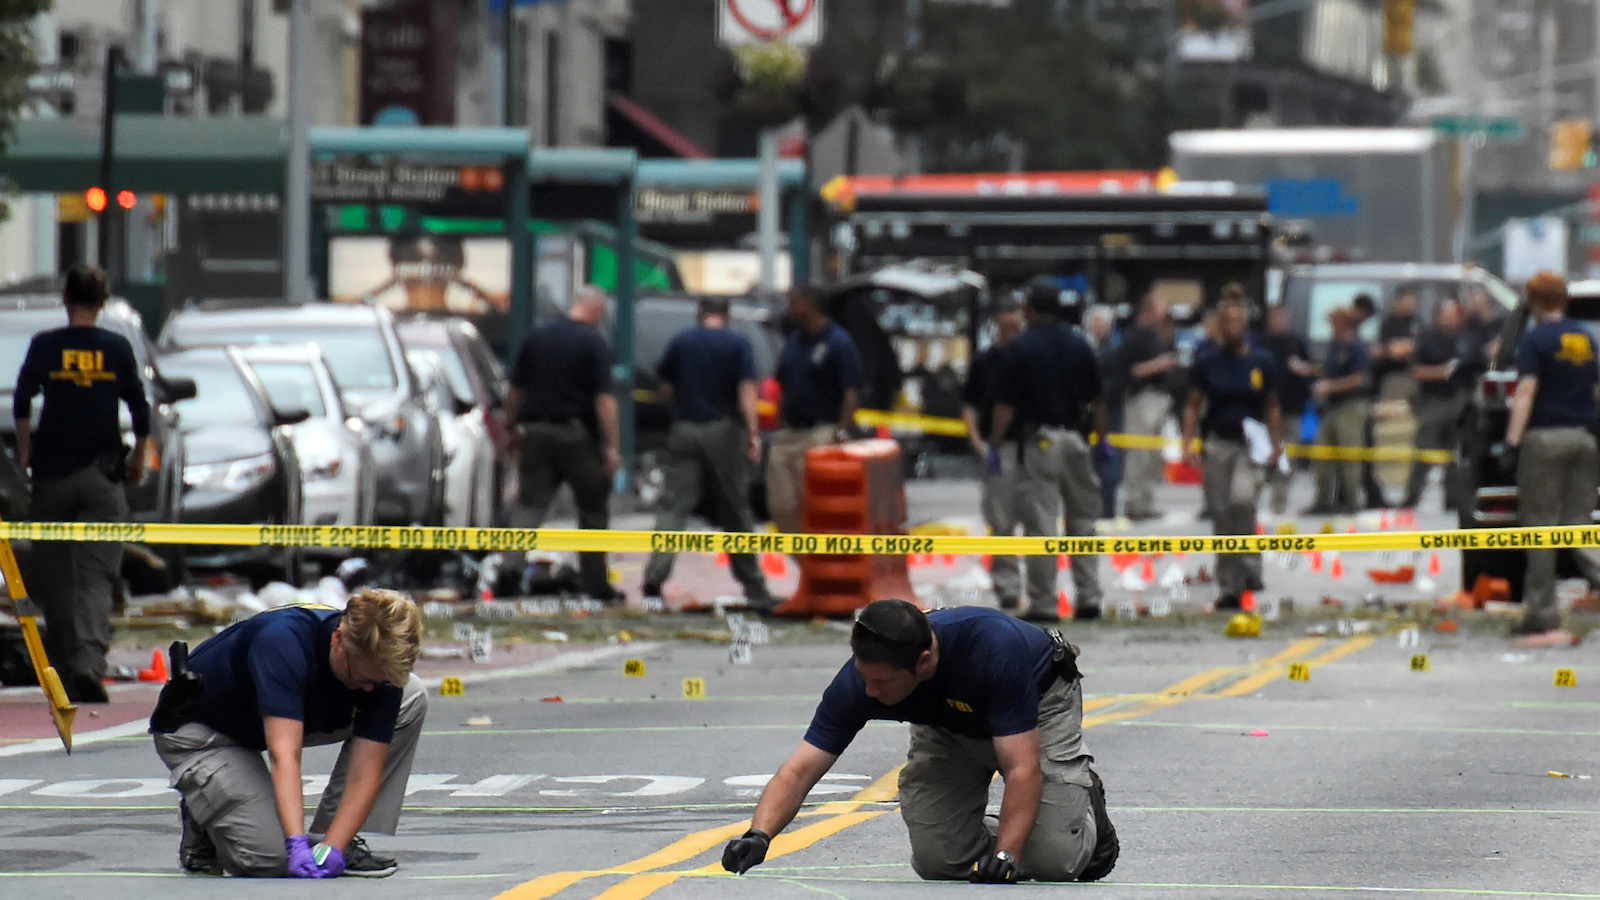 Federal Bureau of Investigation (FBI) officials mark the ground near the site of an explosion in the Chelsea neighborhood of Manhattan, New York, U.S.  September 18, 2016.  REUTERS/Rashid Umar Abbasi     TPX IMAGES OF THE DAY      - RTSO9XA